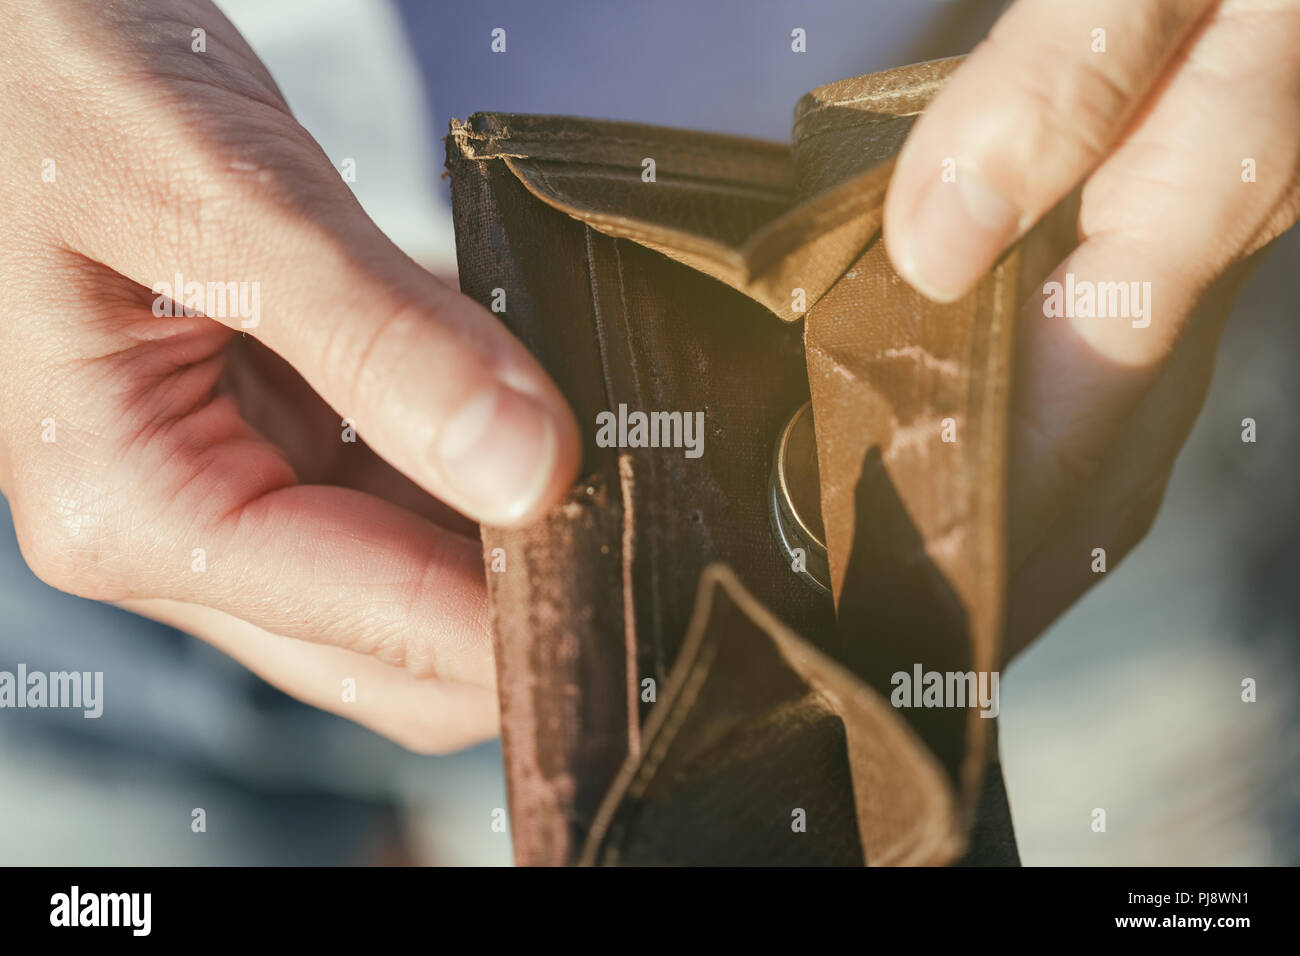 Open purse with coins inside close-up as a sign of lack of money Stock Photo